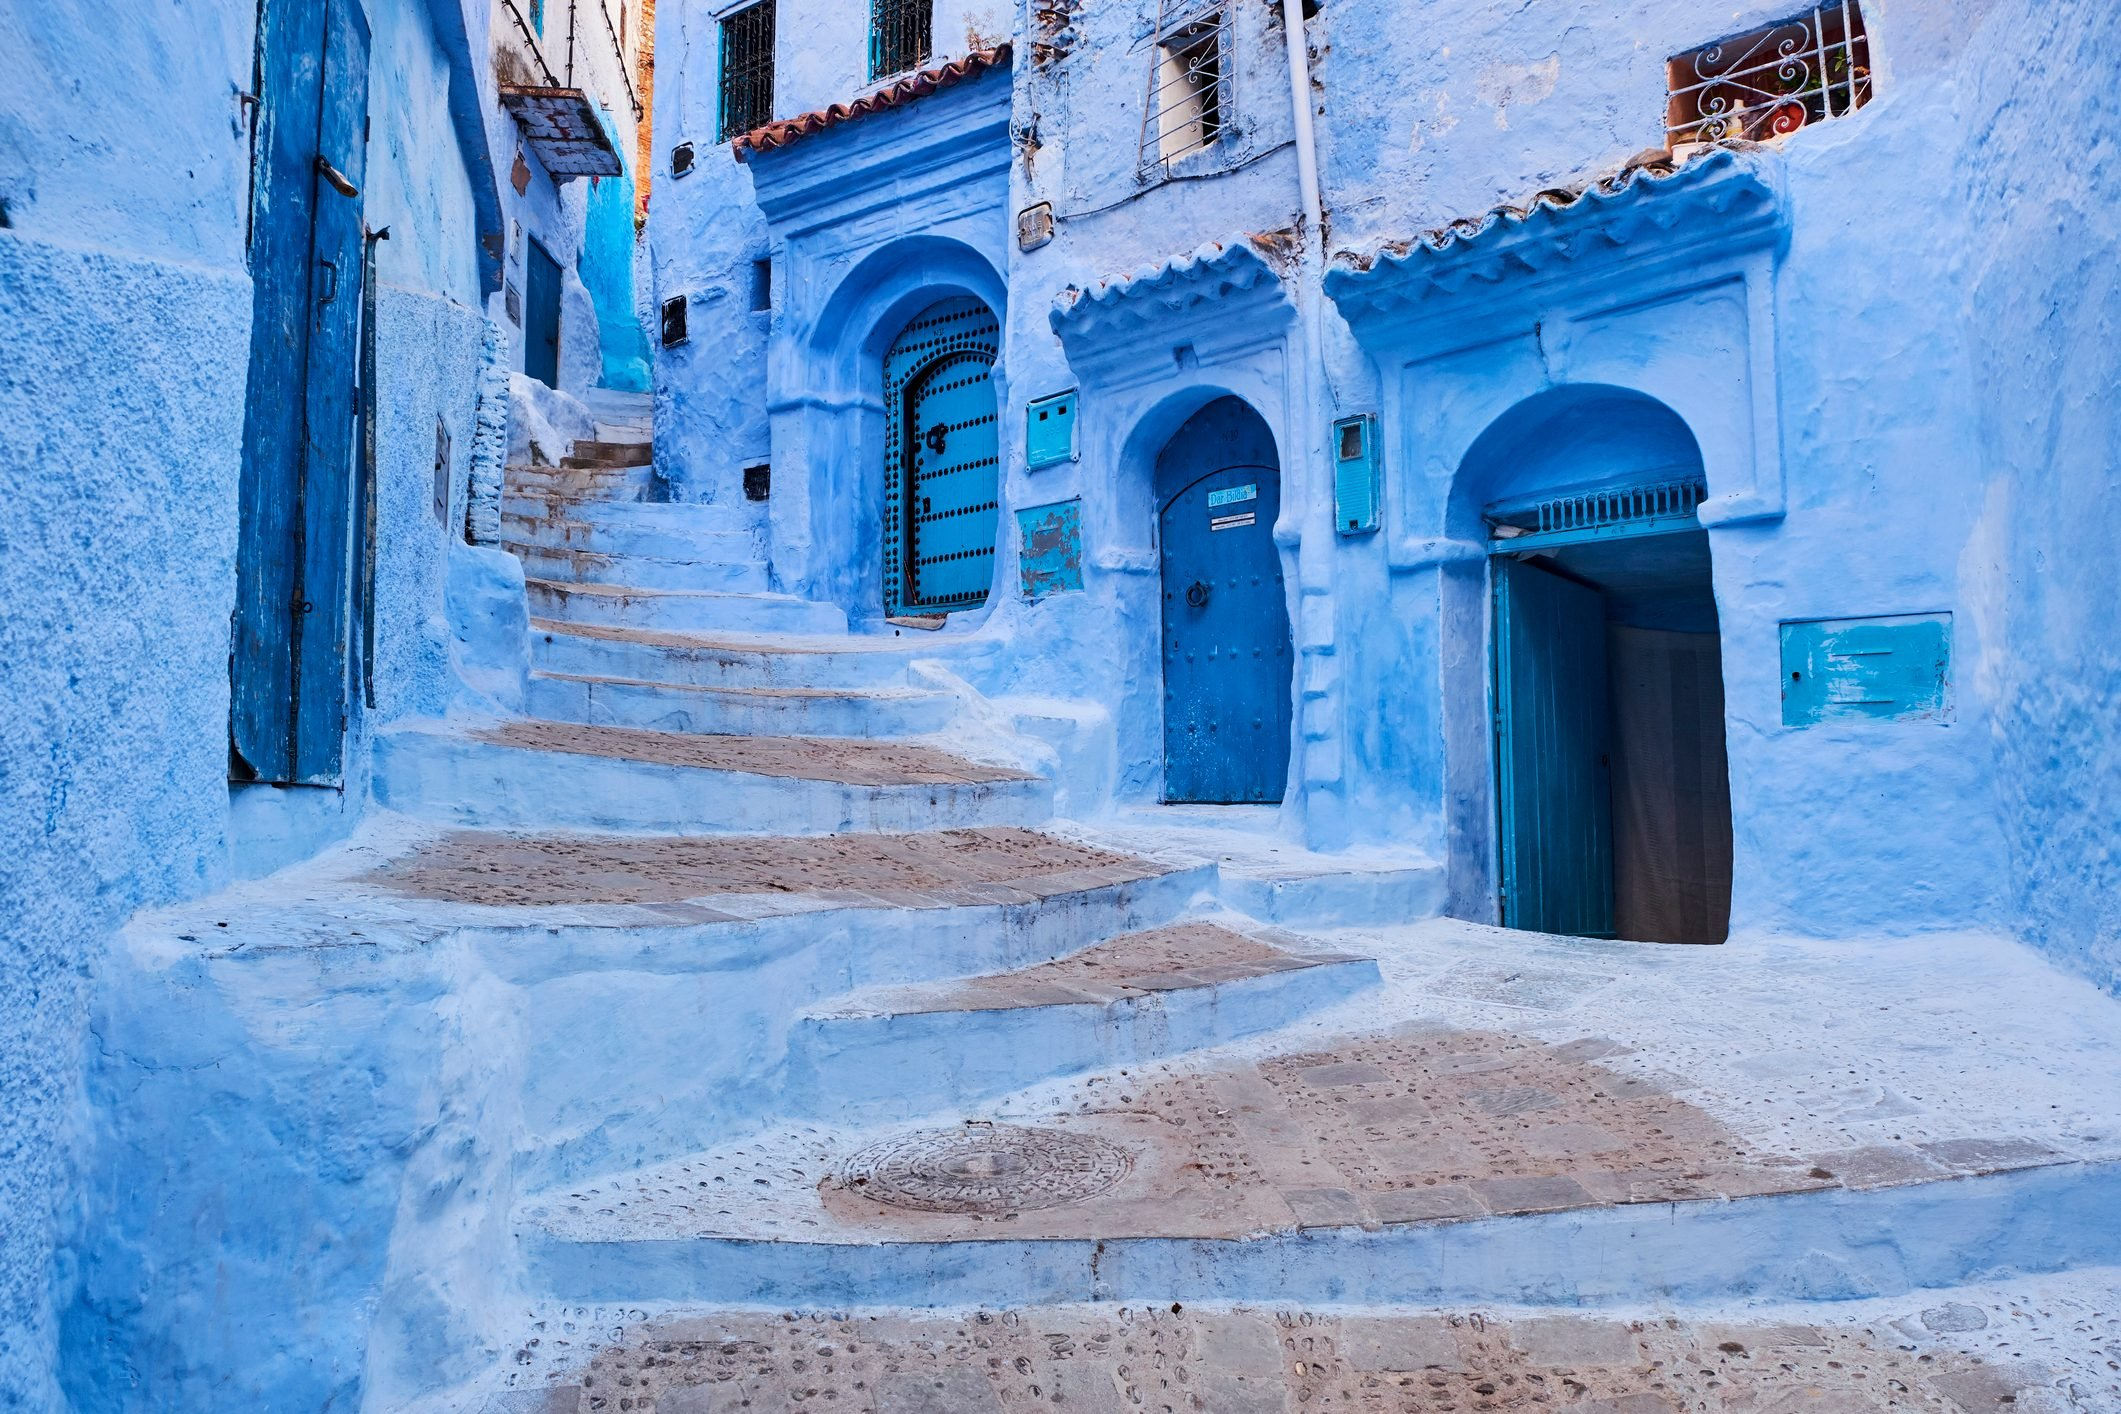 Morocco, Rif area, Chefchaouen (Chaouen) town, the blue city